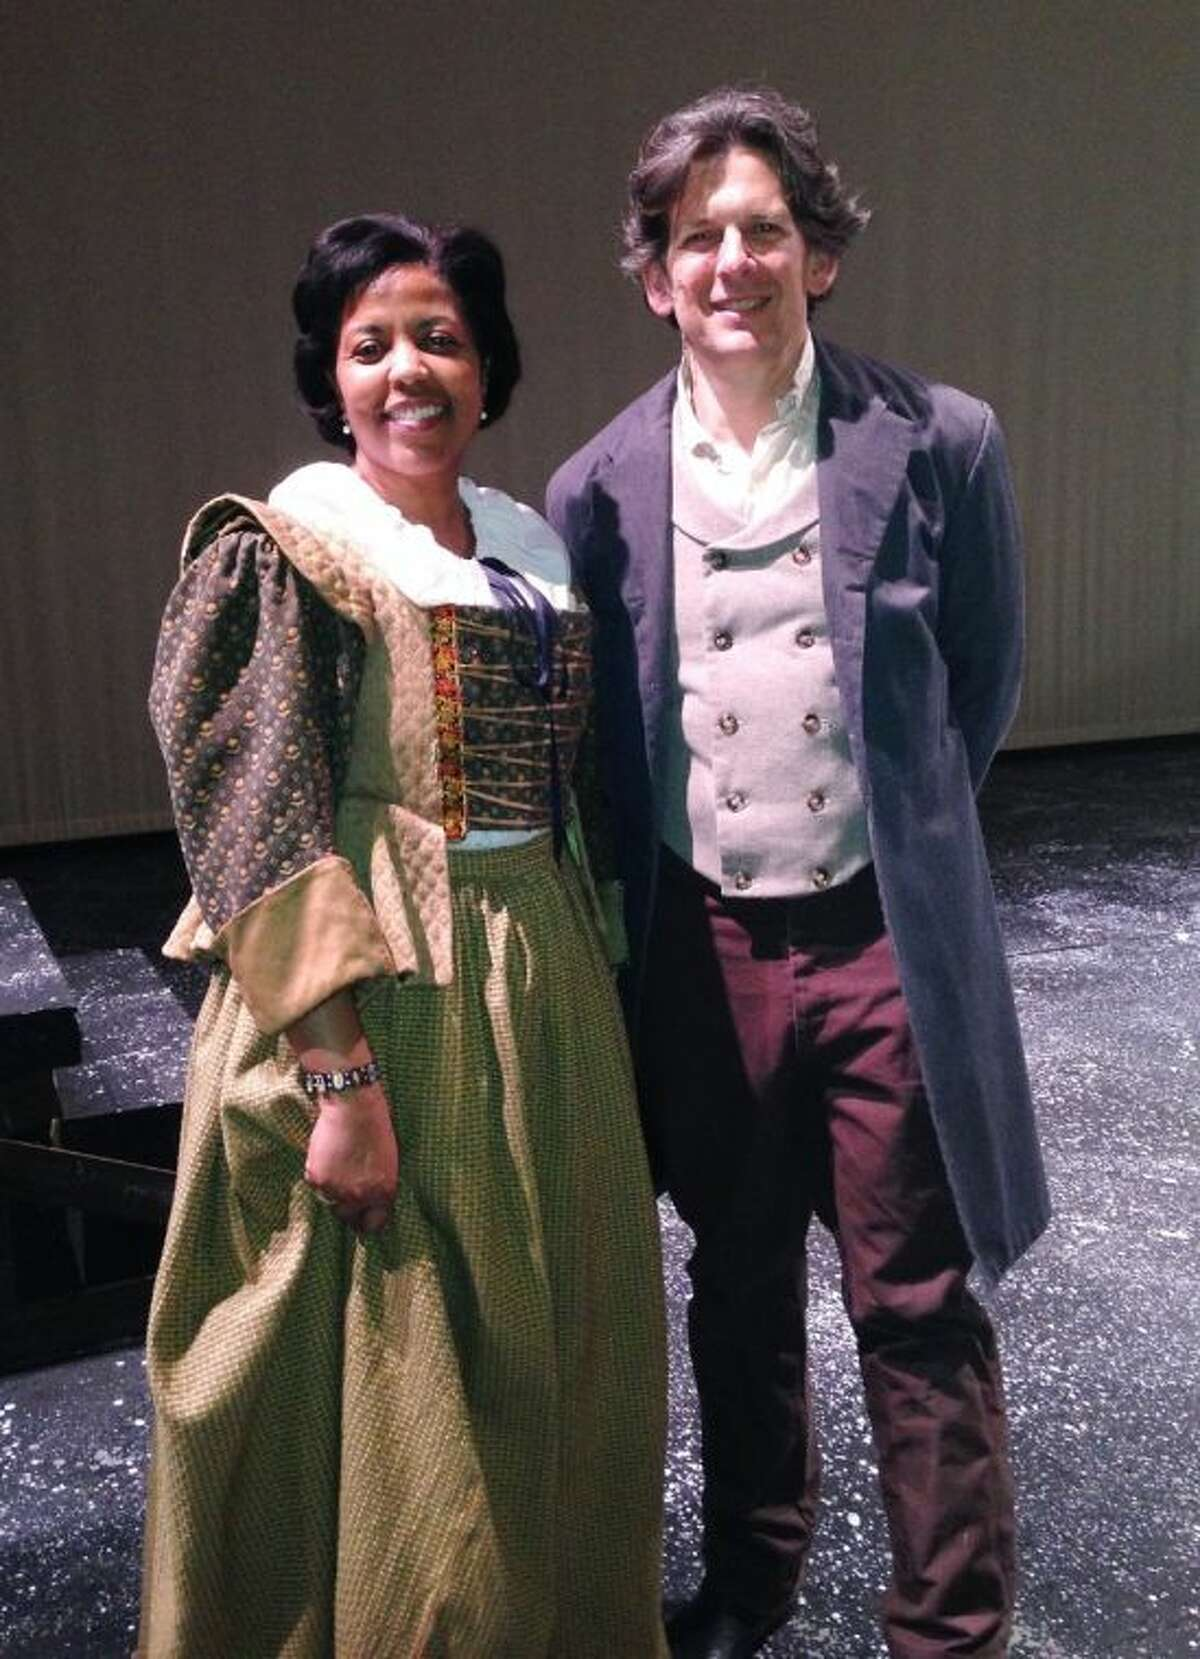 Labay Middle School employee Sue Eslami (chorus) and private voice instructor Drew Slatton (Jean Valjean) will have roles in the upcoming production of Les Misérables at Lone Star College-CyFair.